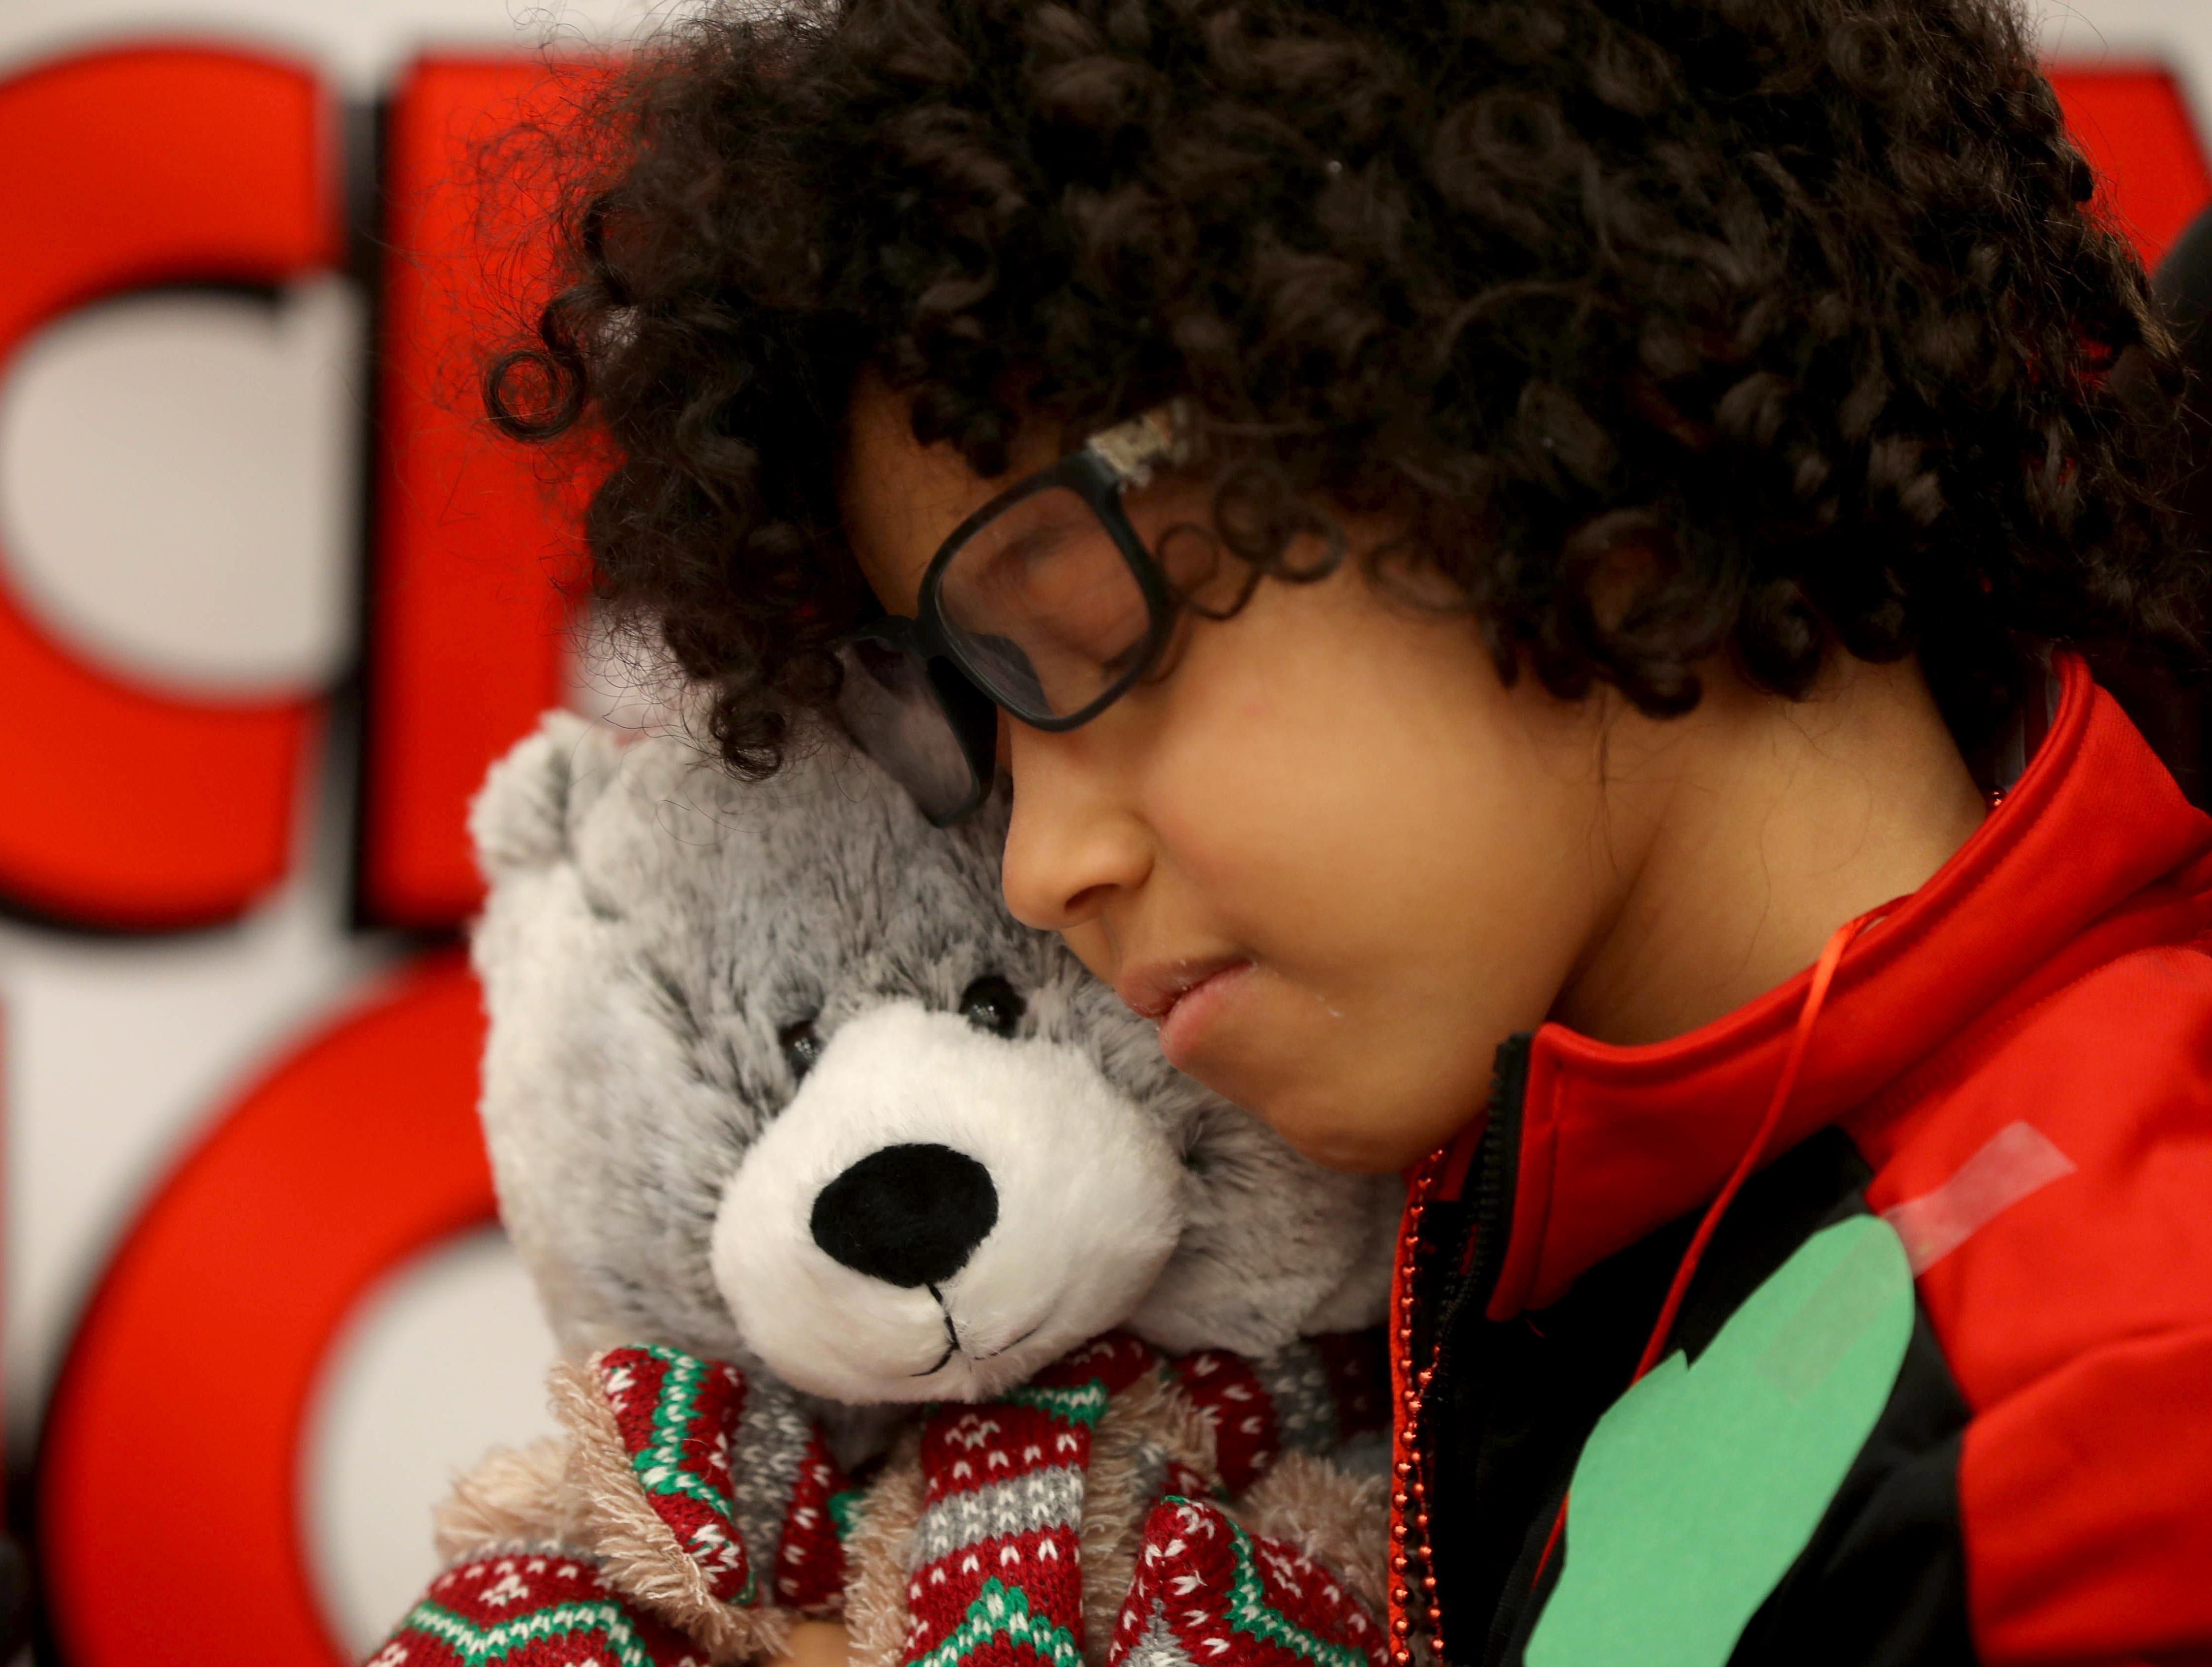 Rocky Marrero, 10, a patient at Blythedale Children's Hospital in Valhalla, cuddles with a stuffed bear during the annual holiday show at the hospital Dec. 14, 2018.